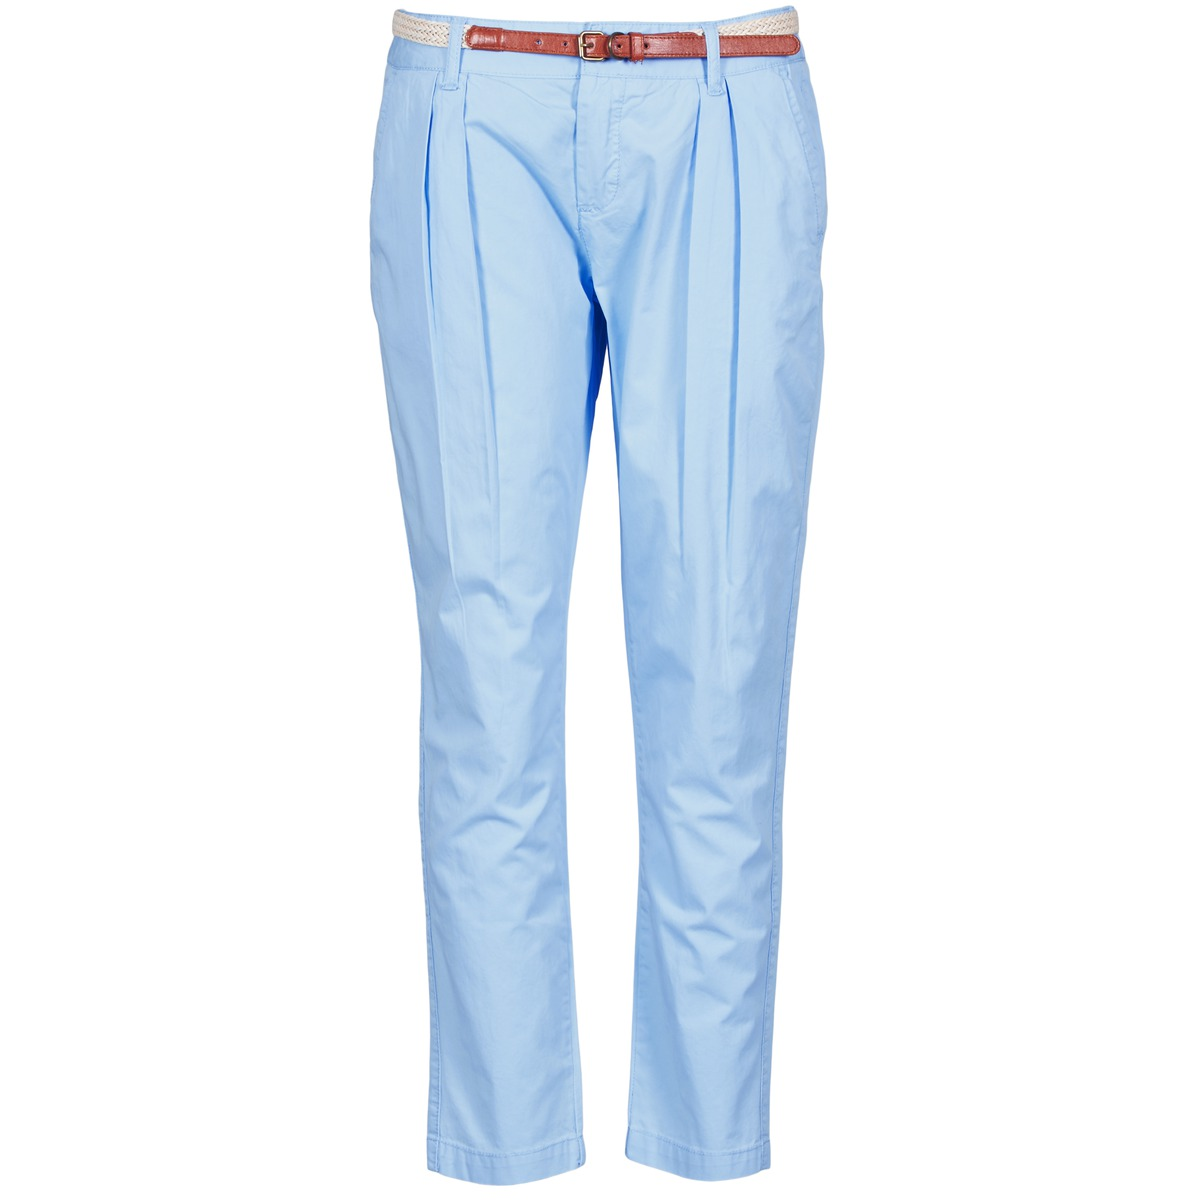 La City PANTBASIC Blau